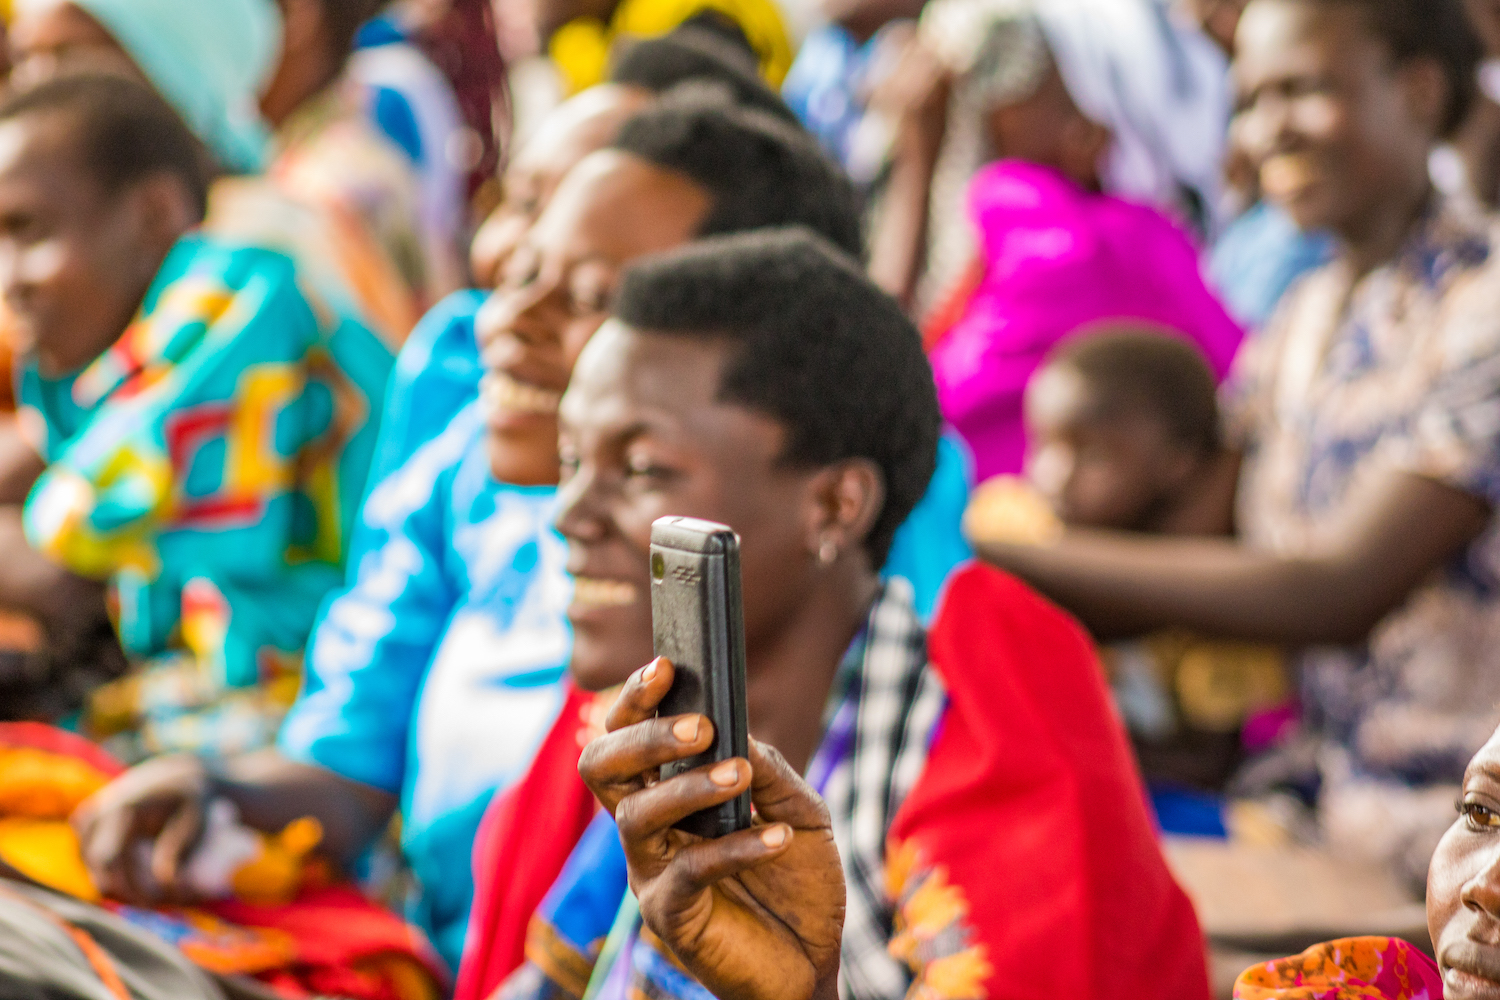 The parents of the students glowed with pride as they watched their children perform. Many parents took photos and videos on their cell phones. All of them cheered with delight. The parents' reactions show that there is reason to hope that these students will stay in school.